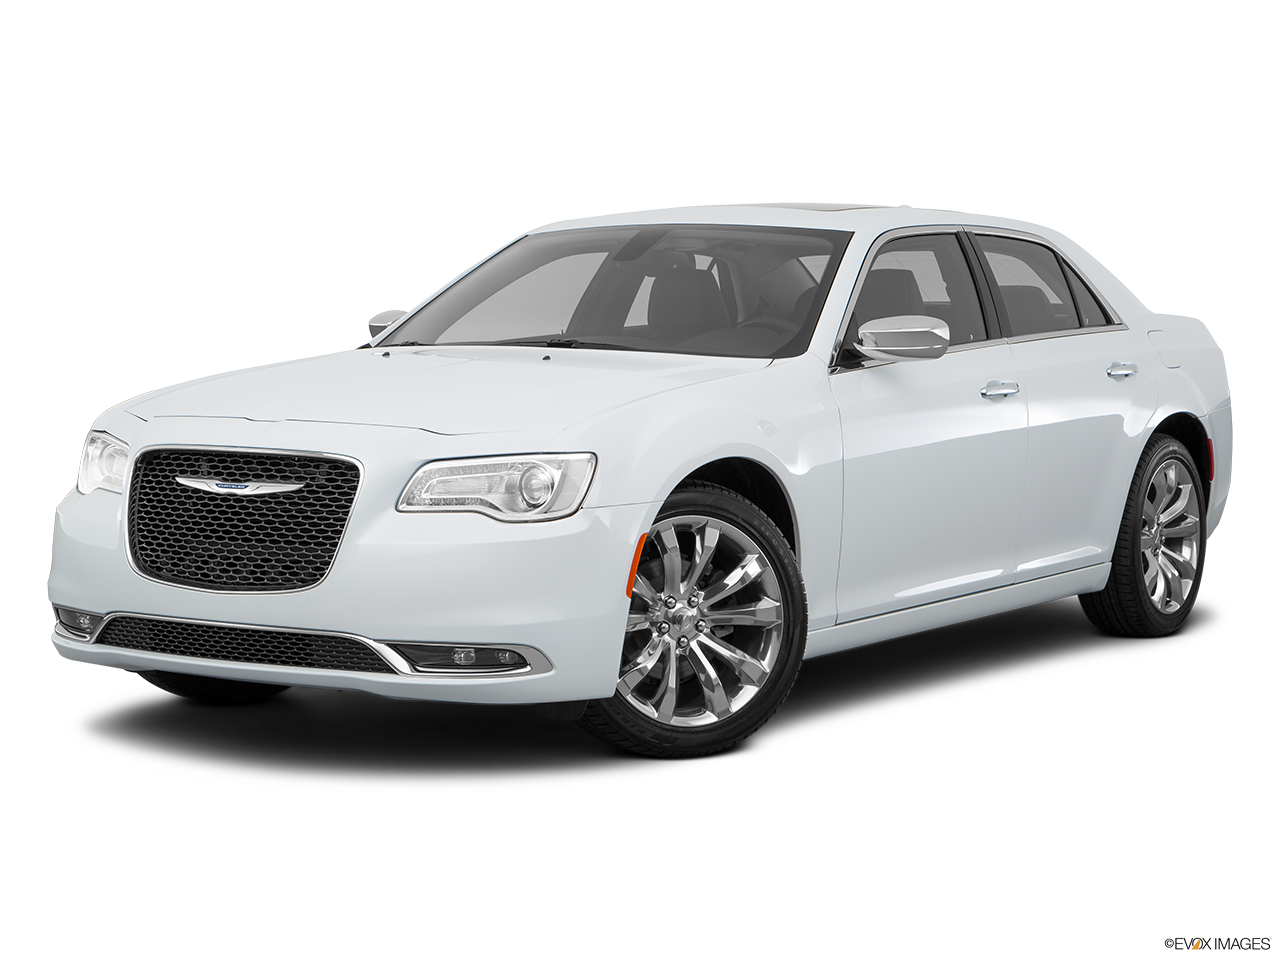 Test Drive A 2016 Chrysler 300 at Cherry Hill Dodge Chrysler Jeep RAM in Cherry Hill